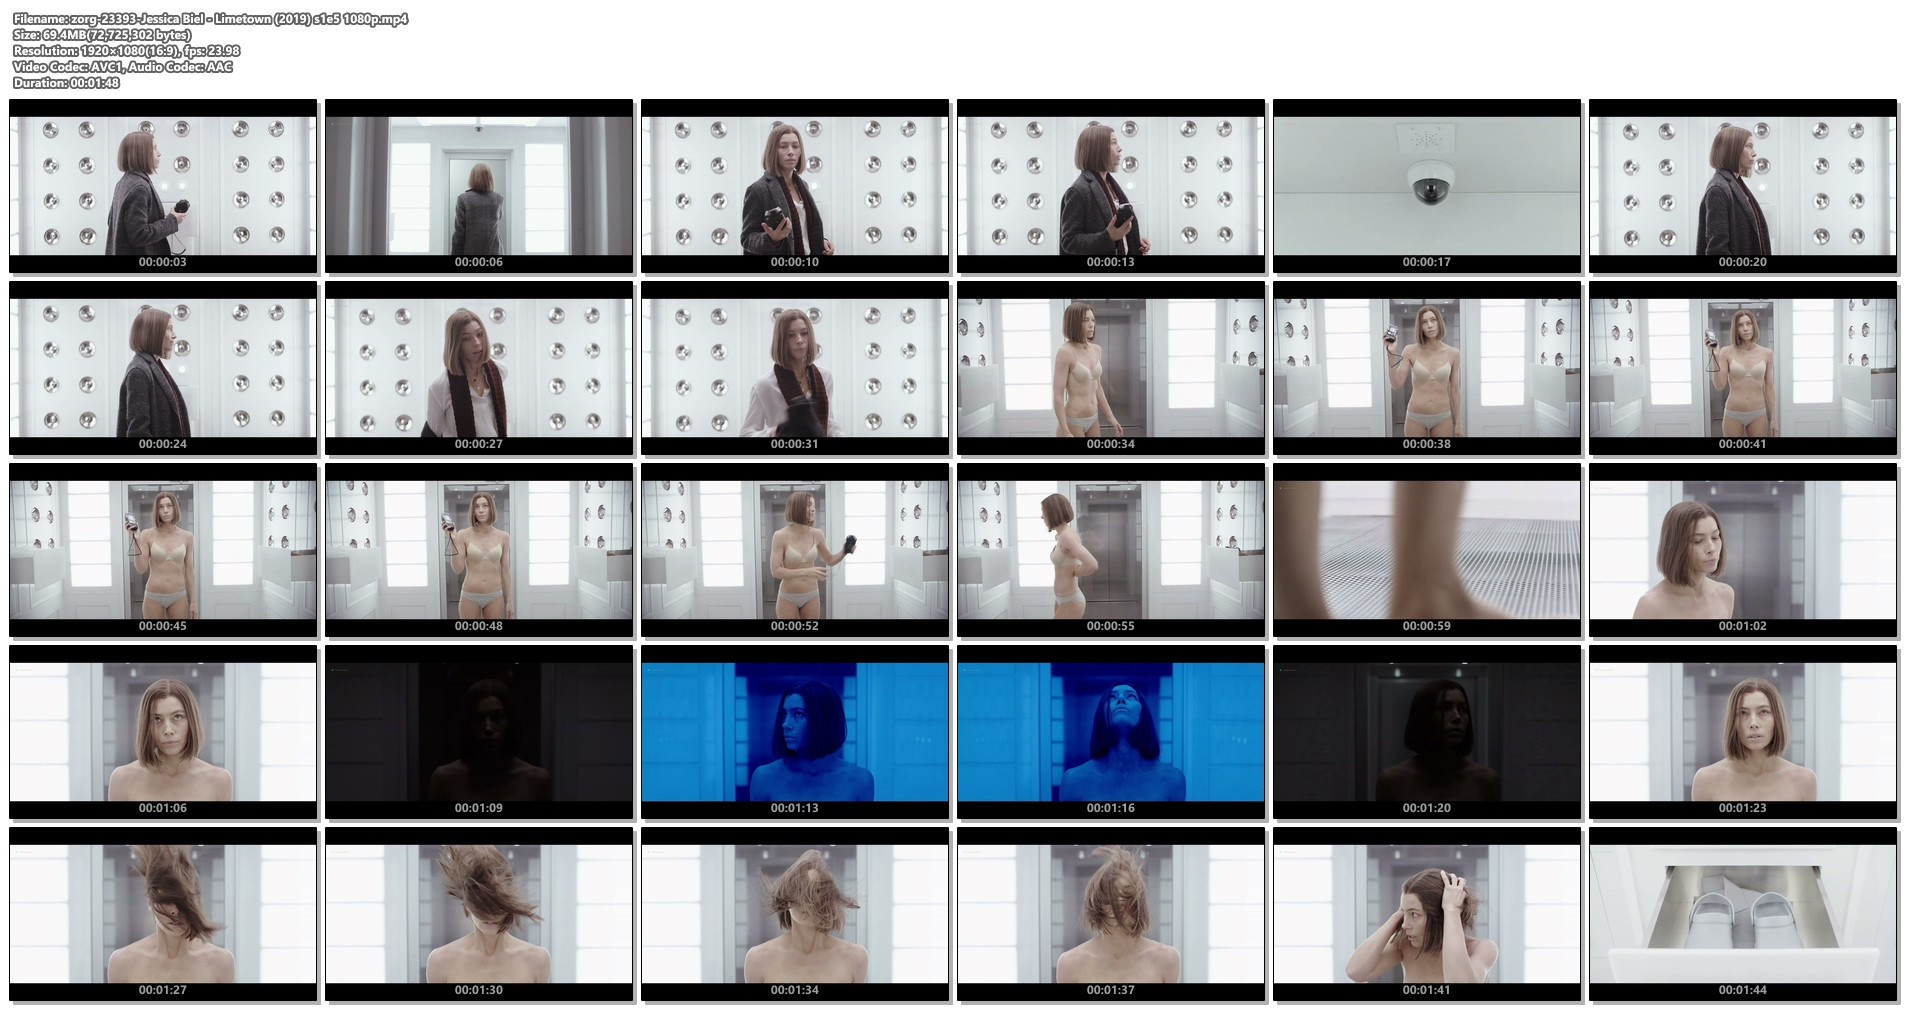 Jessica Biel hot and sexy in bra and panties- Limetown (2019) s1e5 1080p (1)